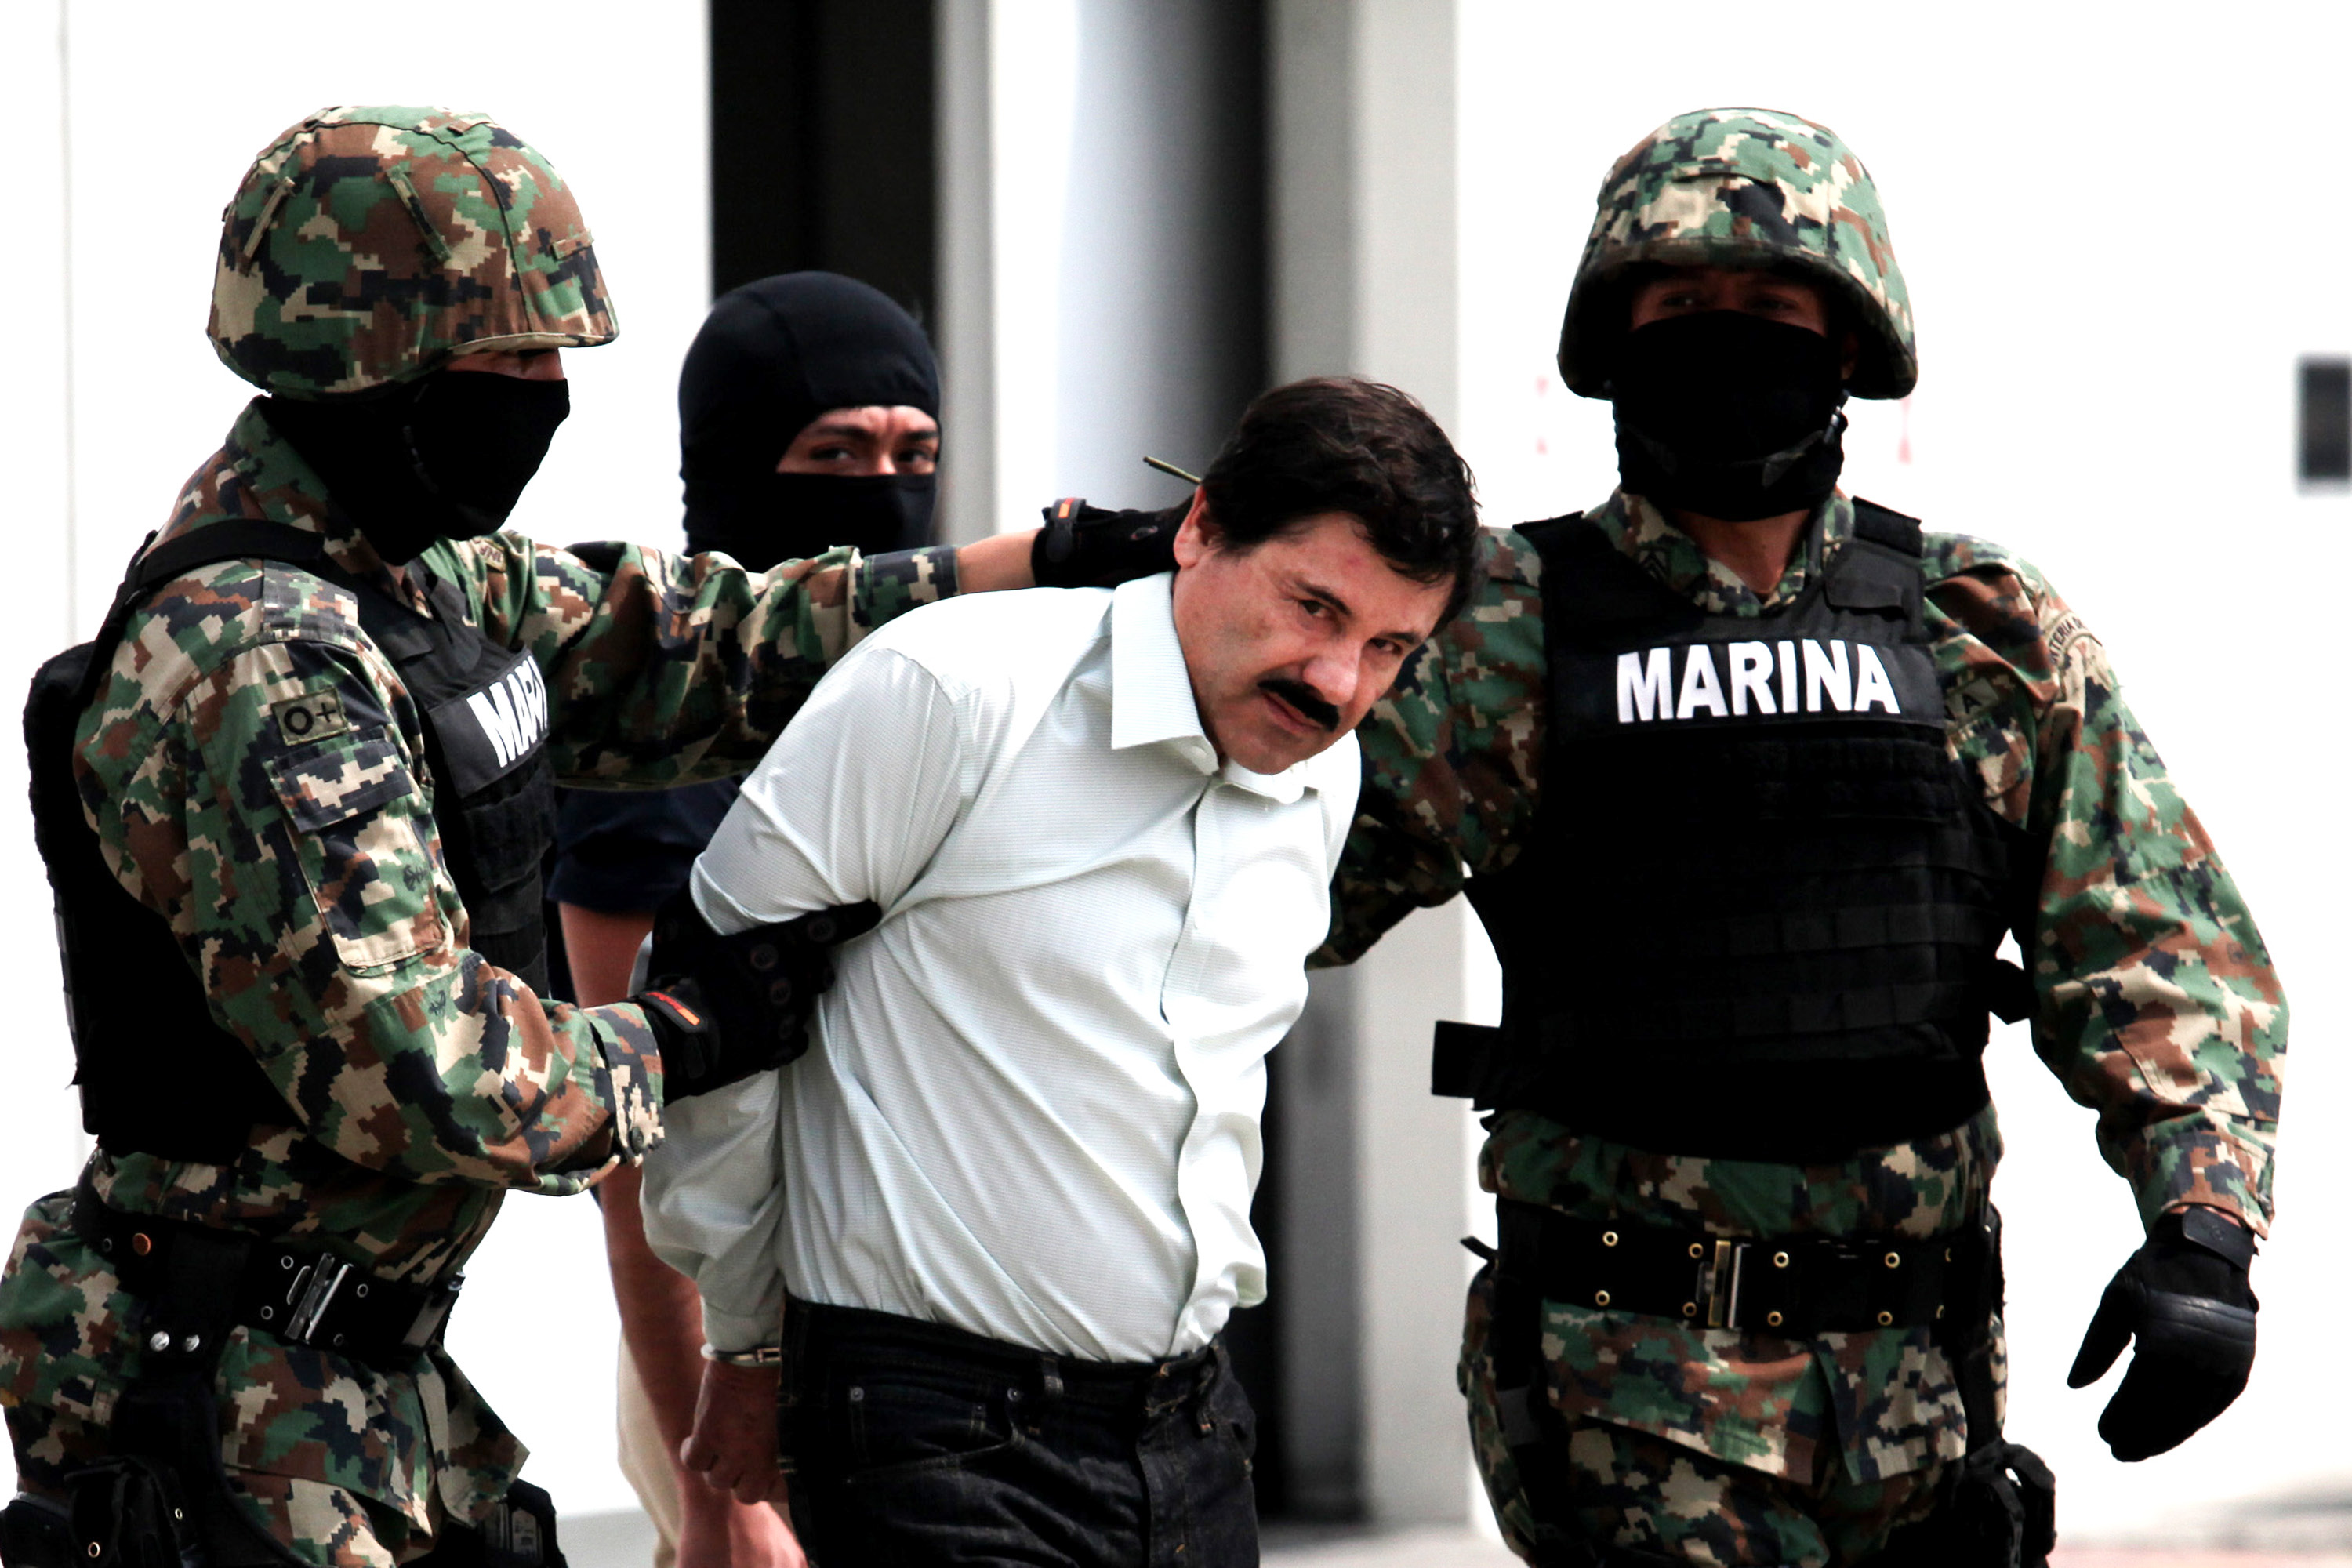 "Mandatory Credit: Photo by Jair Cabrera Torres/NurPhoto/REX/Shutterstock (3601811a) Mexican Navy soldiers escort Joaquin Guzman Loera (front), alias ""El Chapo Guzman"", leader of the notorious Sinaloa Cartel Sinaloa drugs cartel leader Joaquin 'El Chapo' Guzman captured, Mexico City, Mexico - 22 Feb 2014 Mexican President Enrique Pena Nieto on Saturday confirmed the capture of the world's most wanted drug lord, Joaquin Guzman Loera, known as El Chapo, in the Pacific resort of Mazatlan."